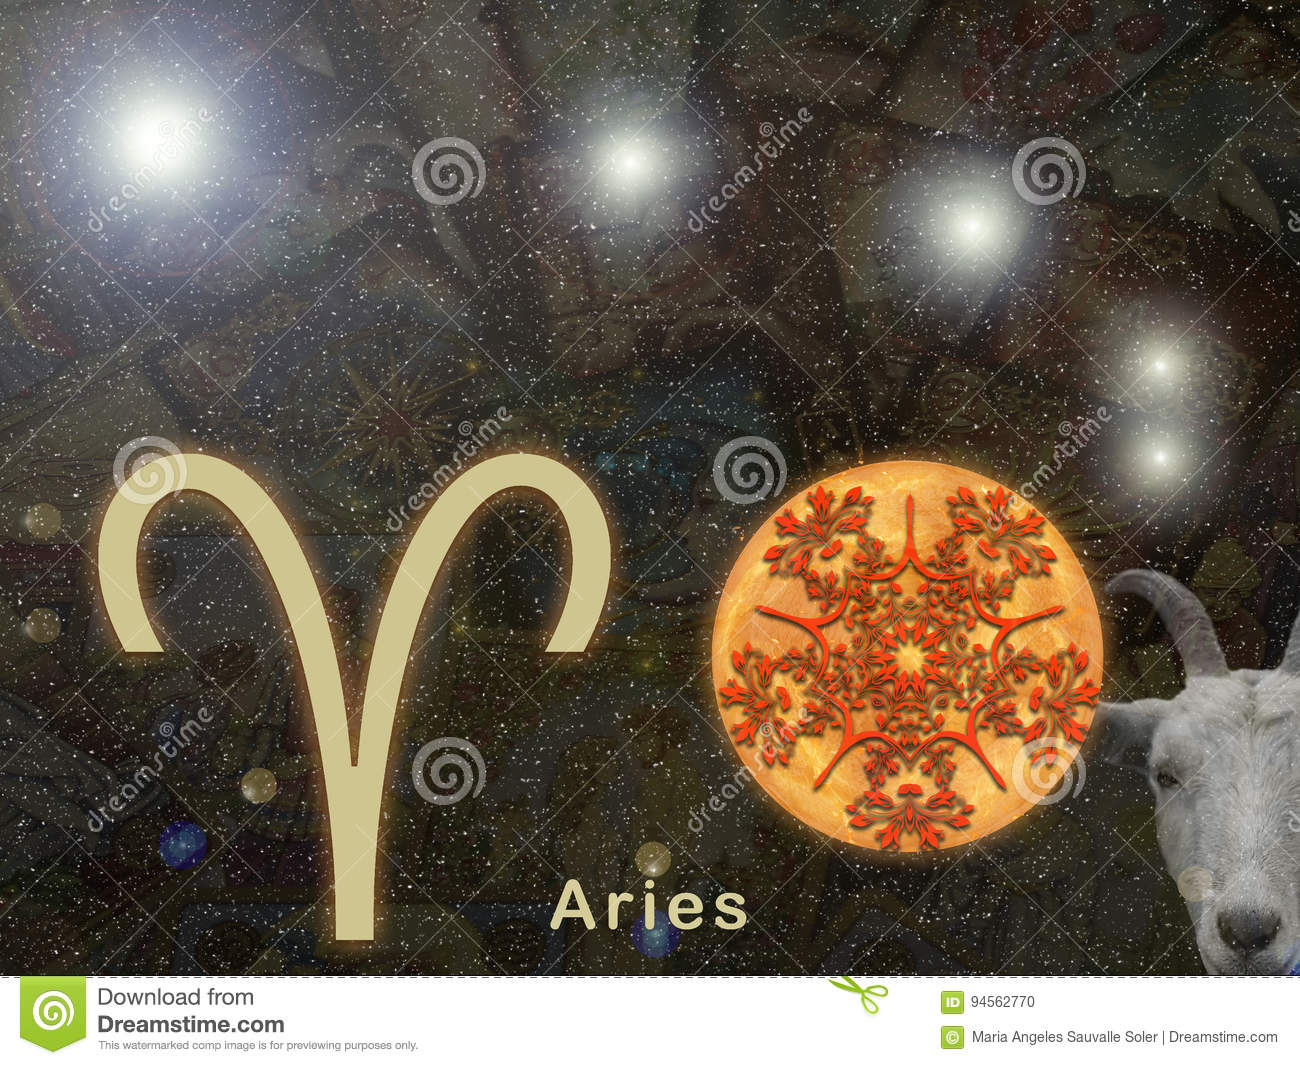 Sign of Aries.